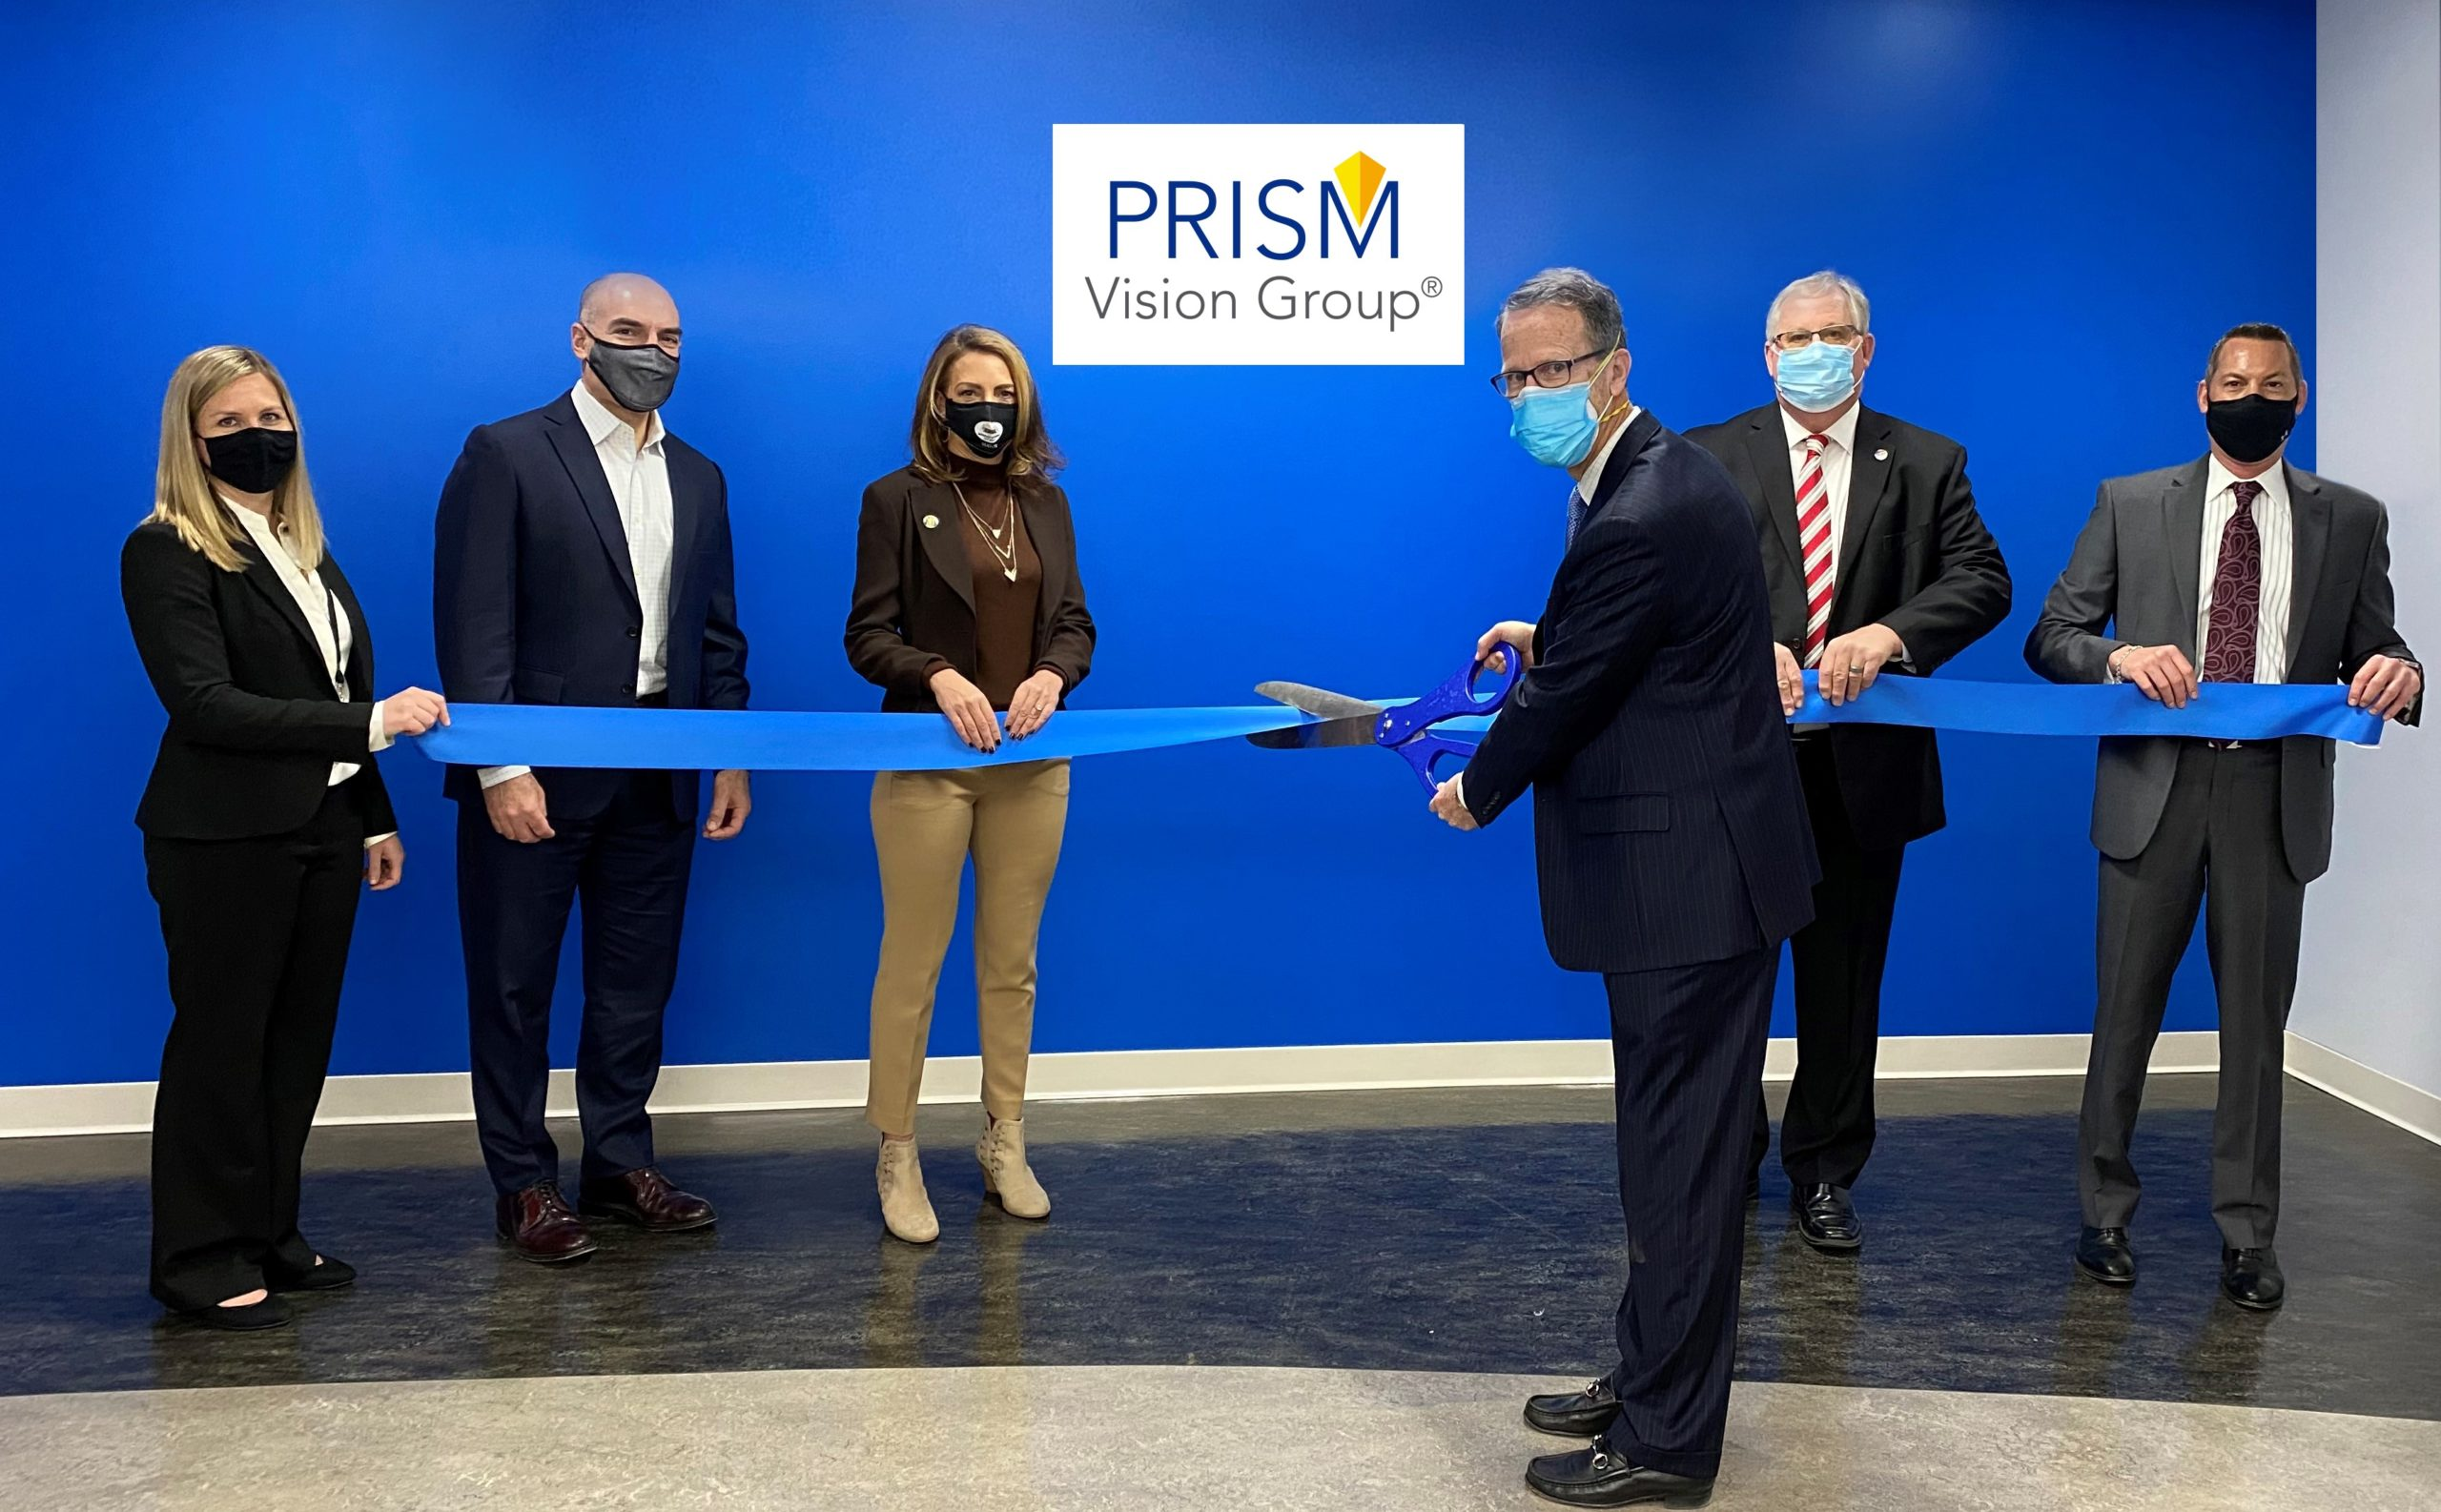 PRISM Vision Group® Moves Headquarters to Berkeley Heights, NJ